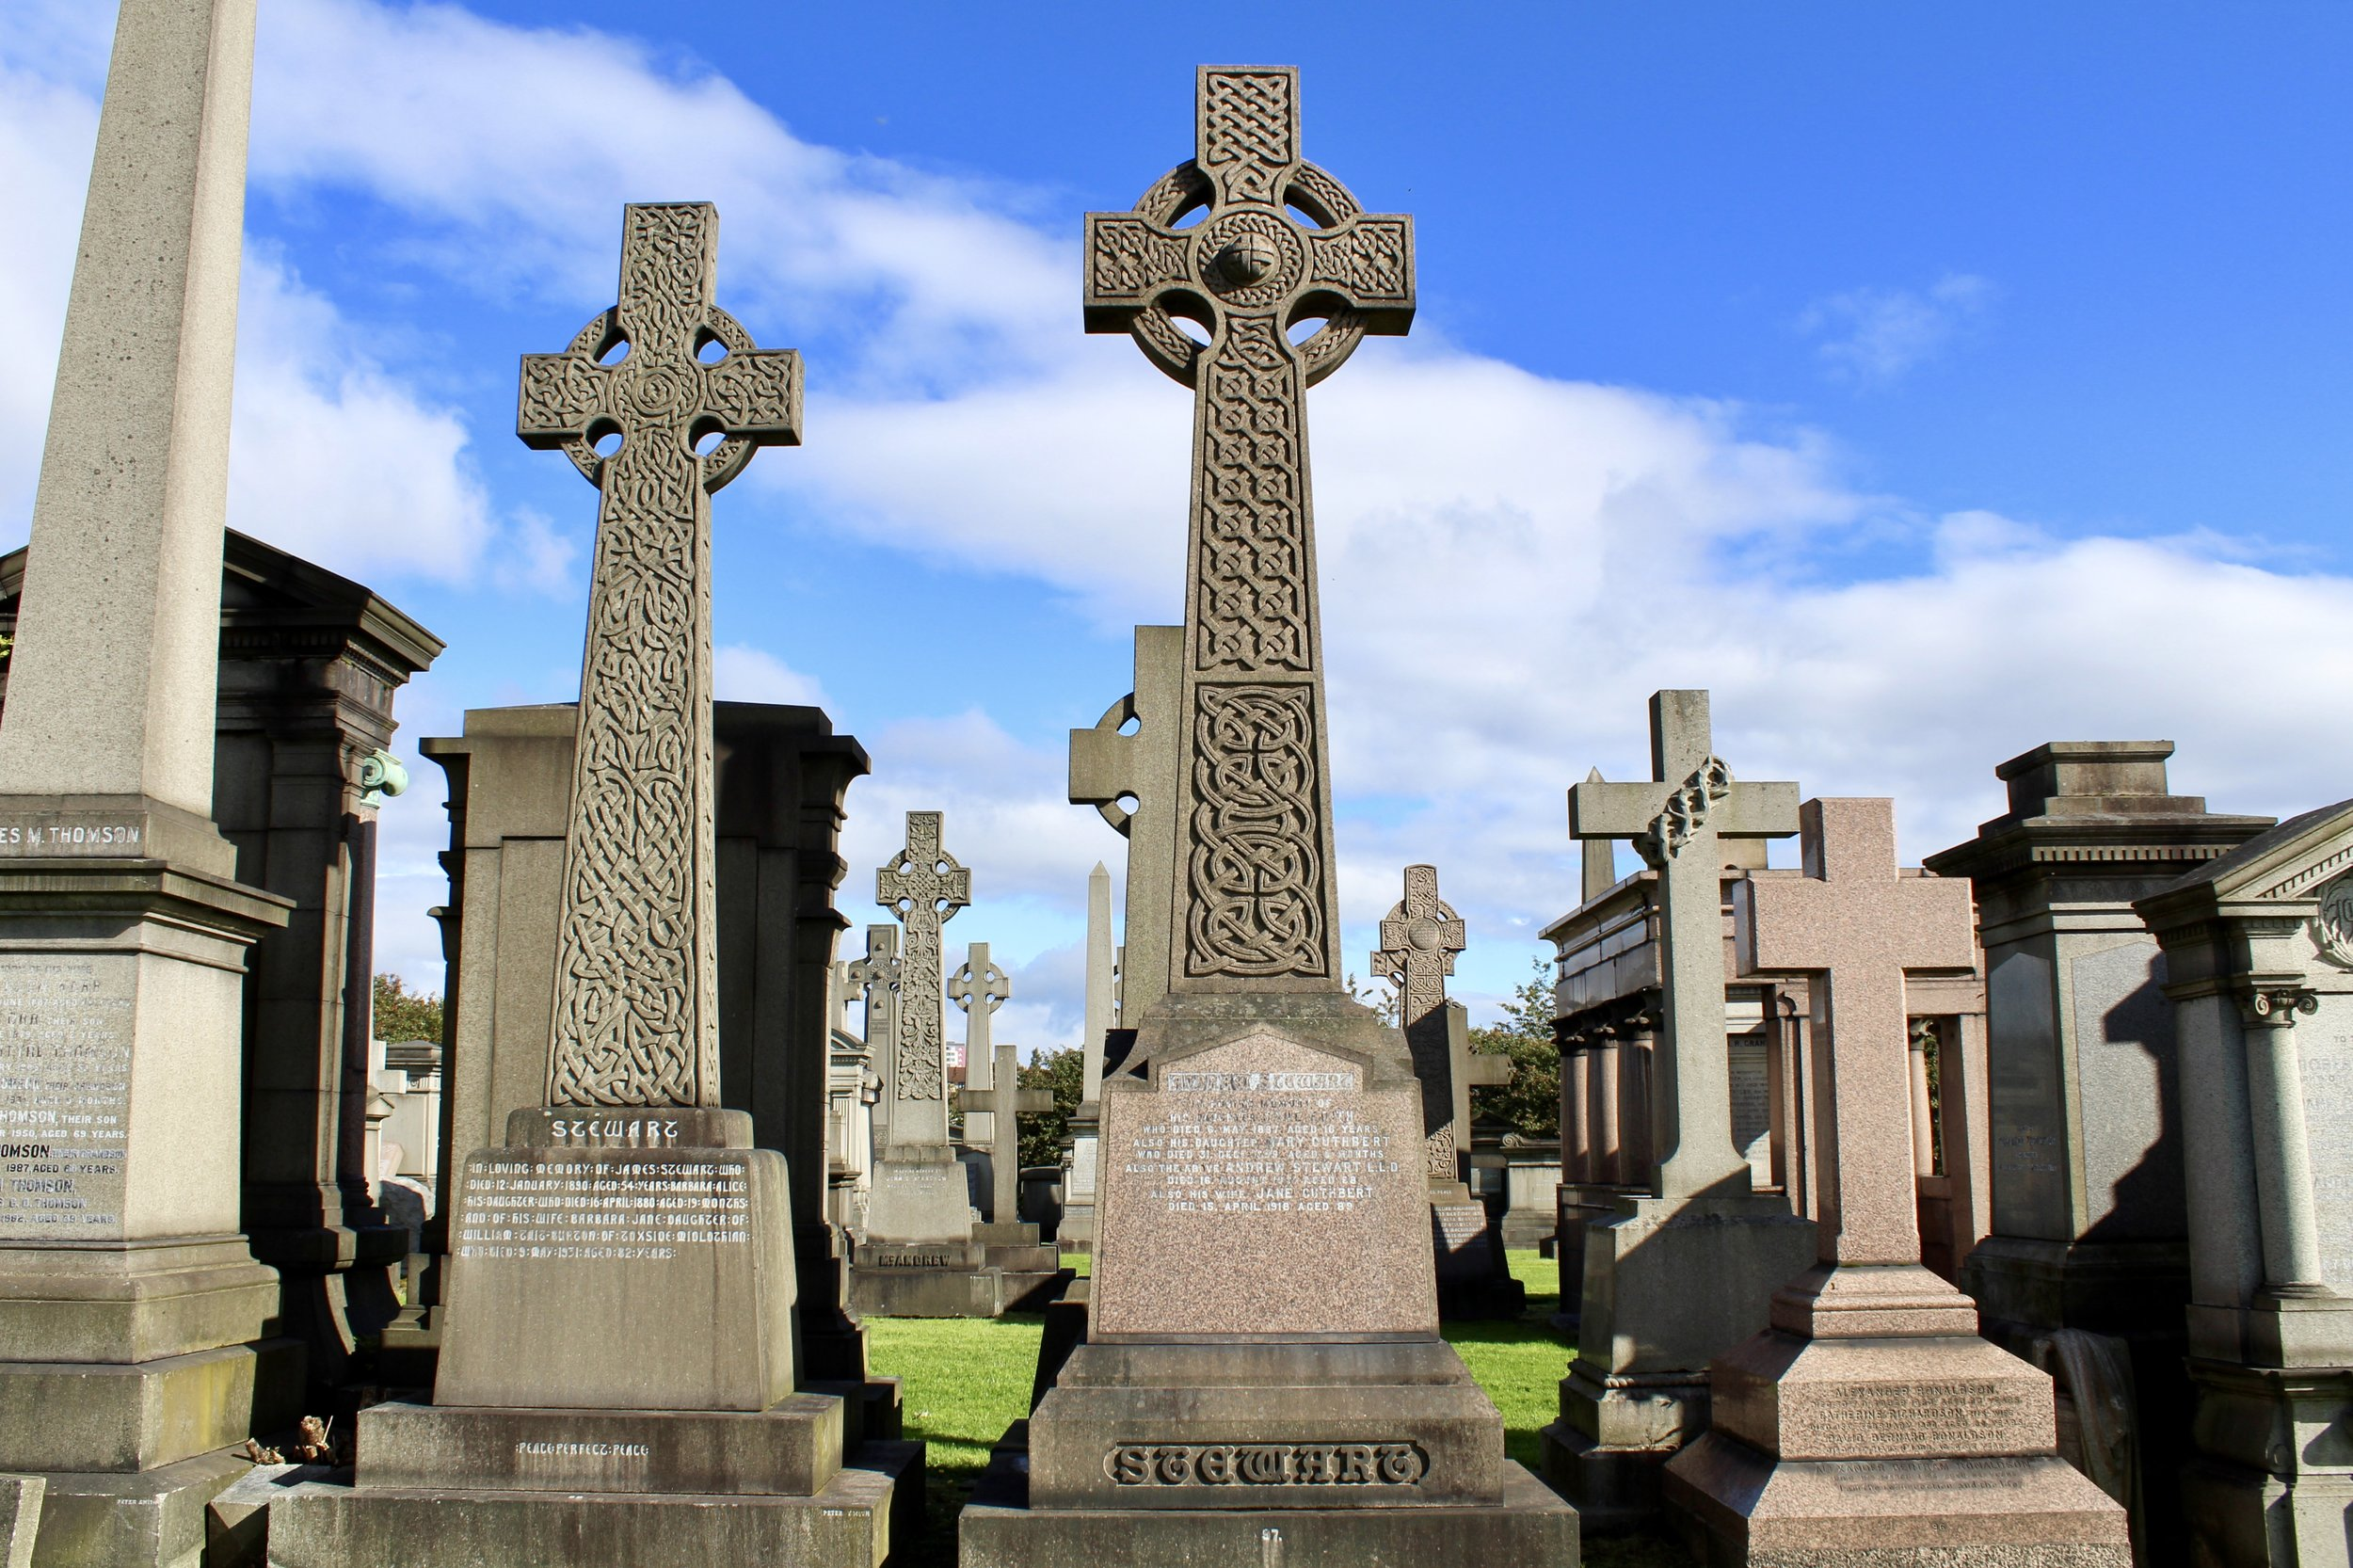 Glasgow has the BEST CEMETERY EVER, called The Necropolis, on top of a hill.